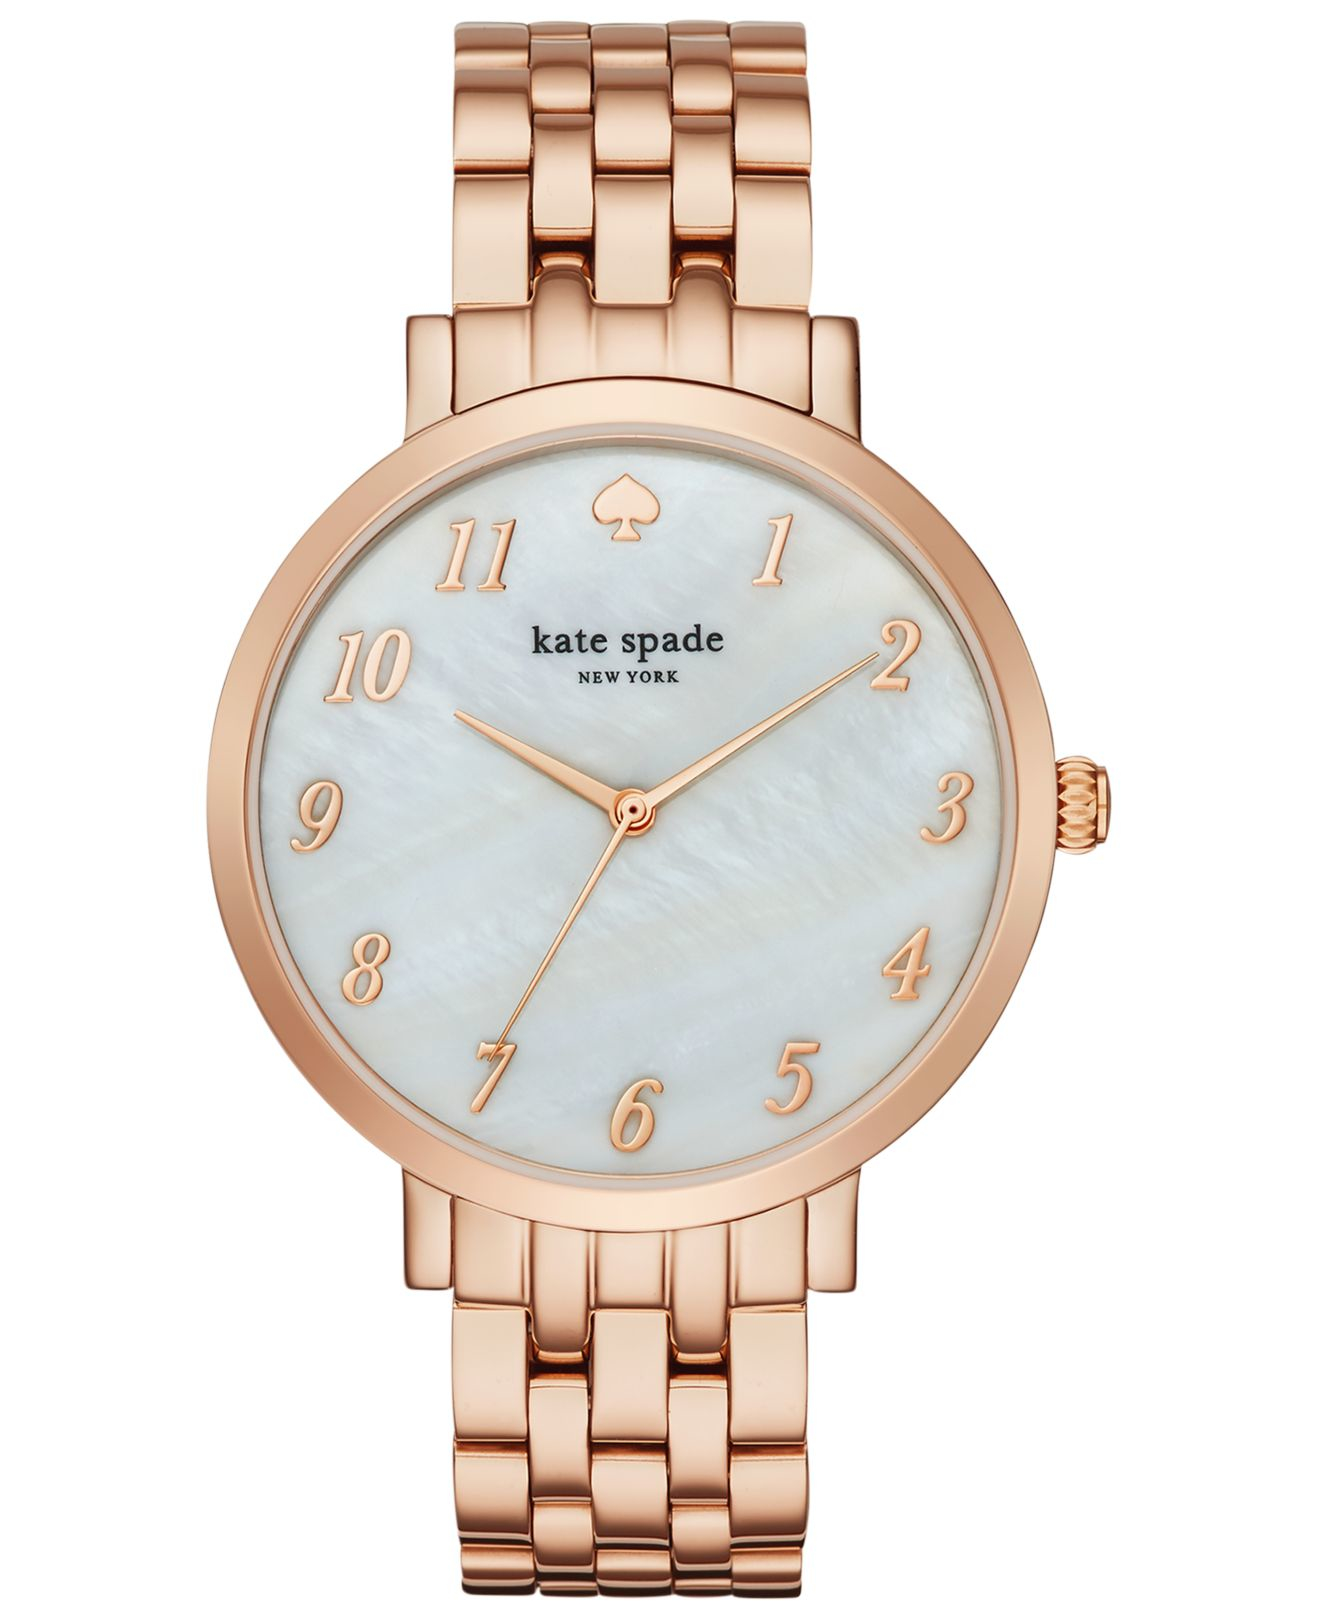 a63c0d1bb6e Kate Spade Accessories Ksw1264 Monterey Rose Gold Tone Watch -  Source.  Gallery